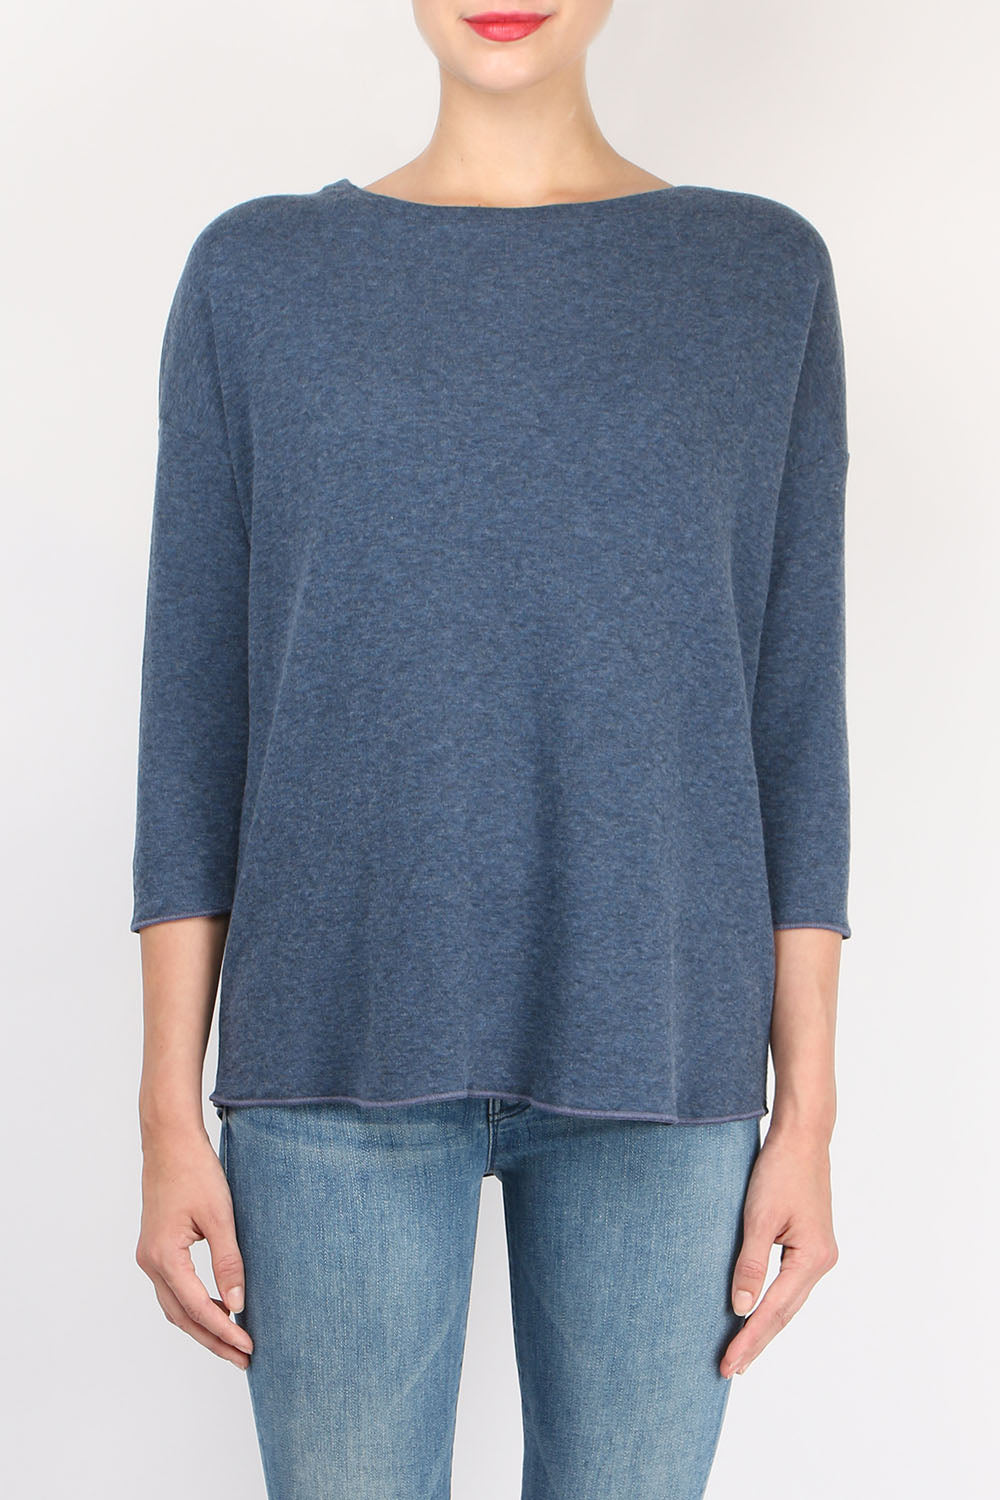 Majestic Filatures Double Face Boatneck